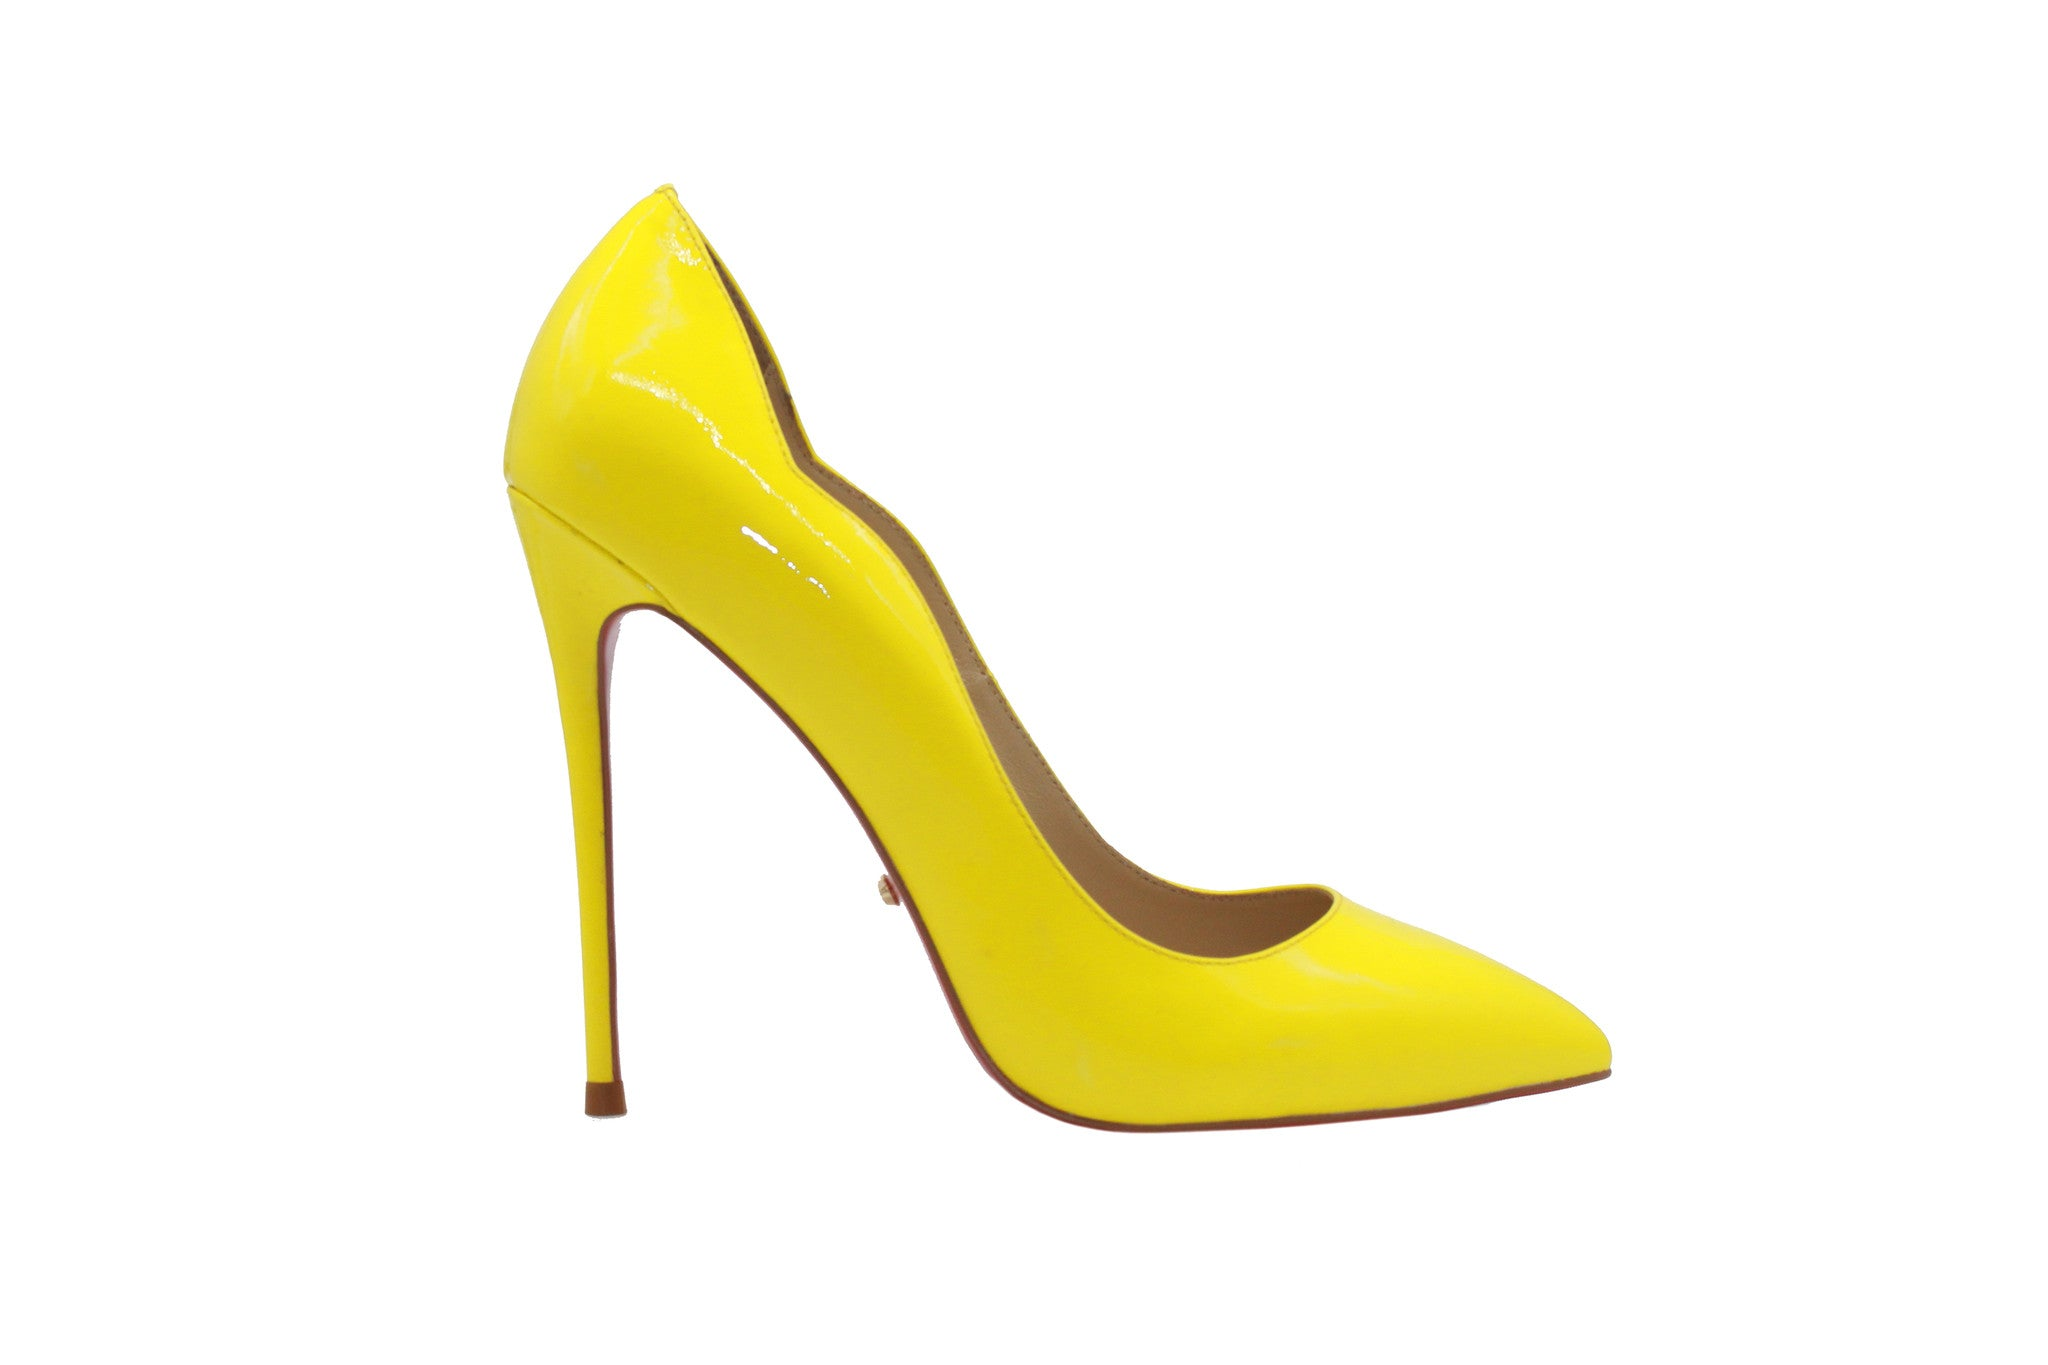 2b9a6b3f2a 5 inch heels - Yellow Scalloped Stiletto Heels - Angelina Voloshina - AV  Heels - 1 ...